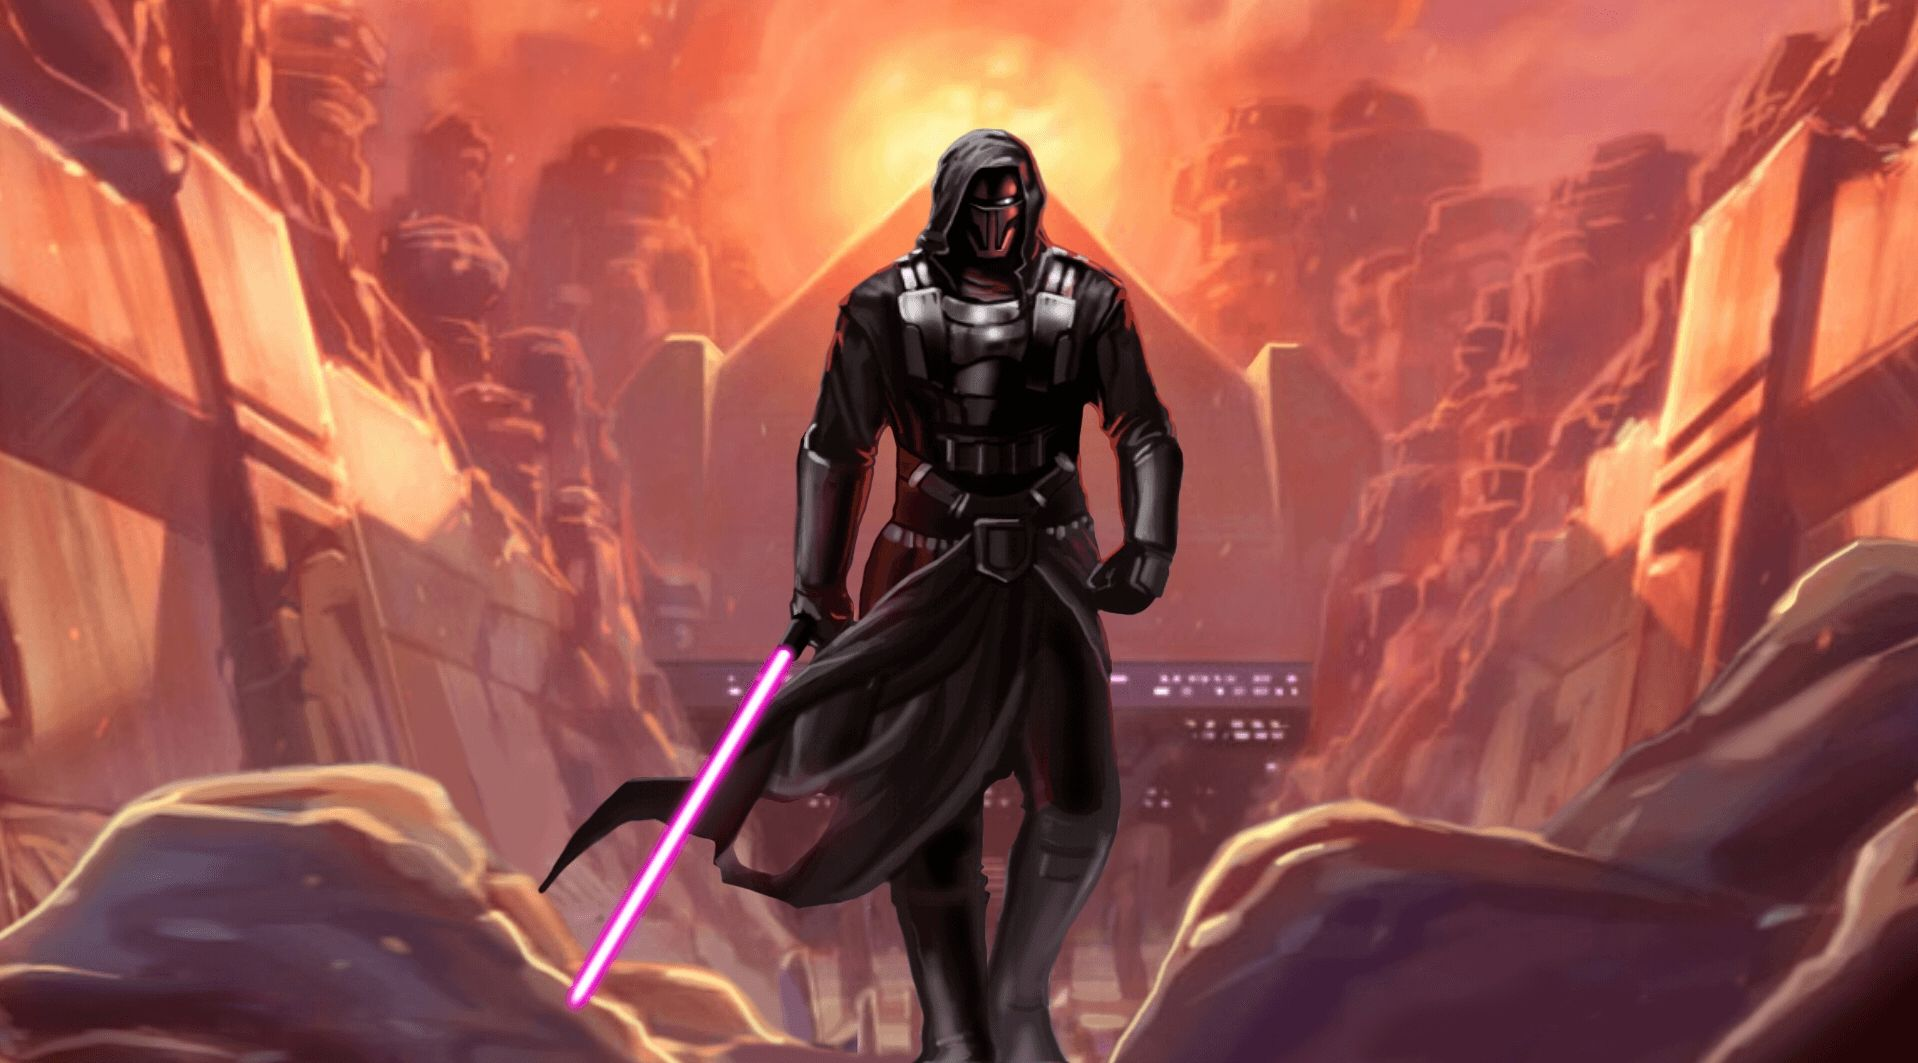 10 Most Popular Darth Revan Wallpaper Hd Full Hd 1920 1080 For Pc Desktop Star Wars The Old Star Wars Darth Revan Star Wars Sith